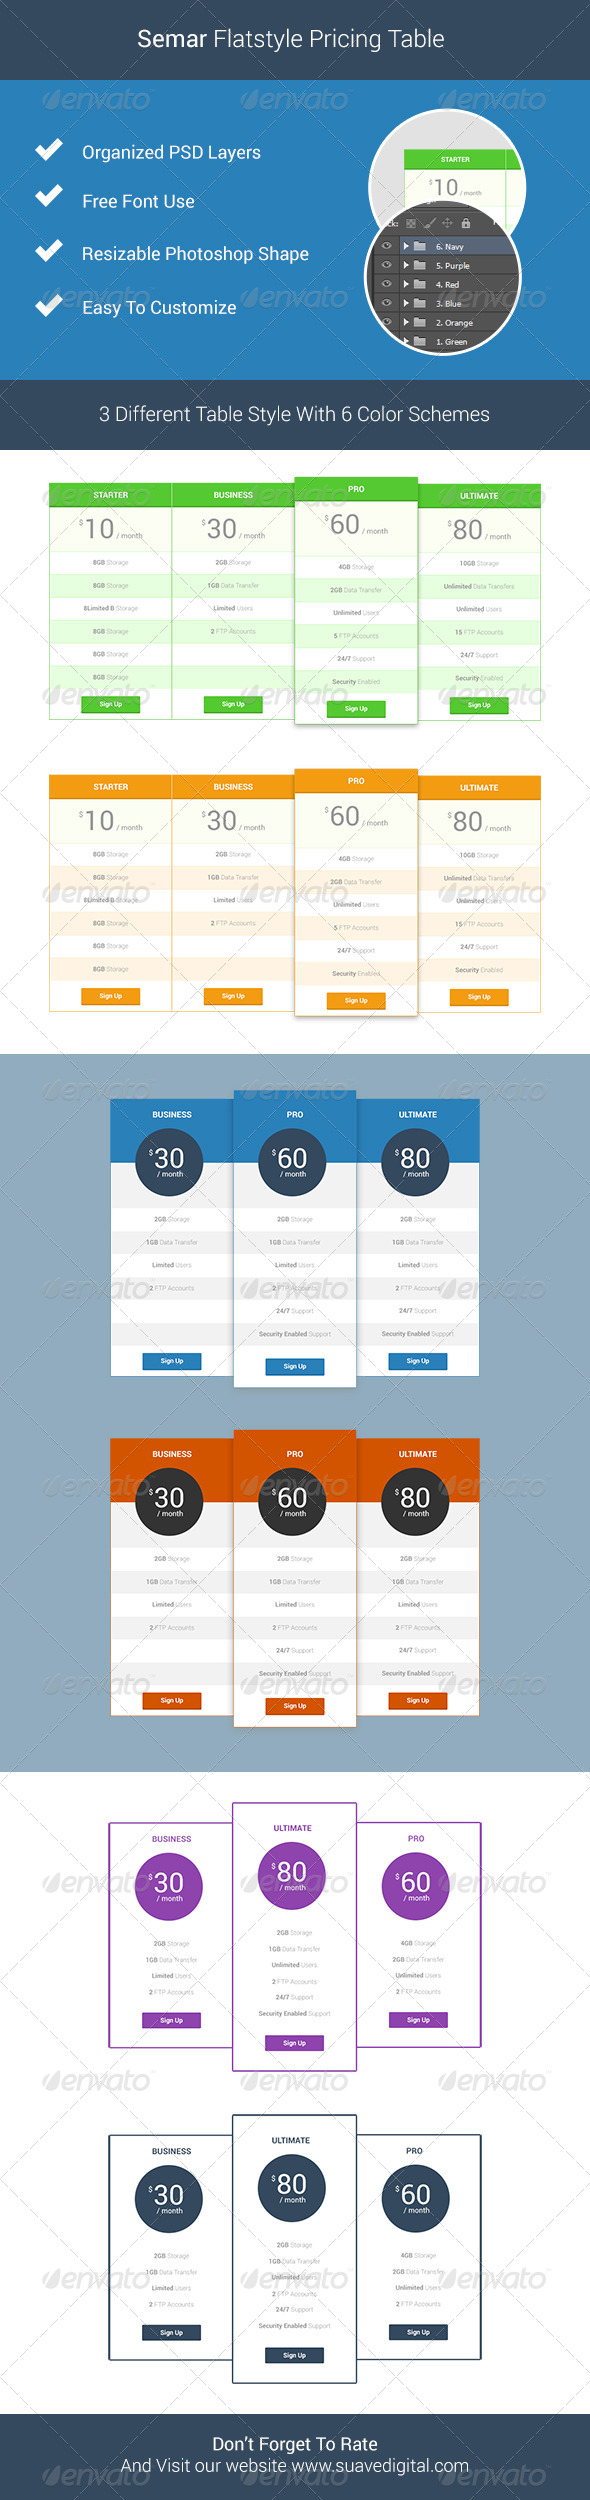 GraphicRiver Semar Flatstyle Pricing Table 7264315